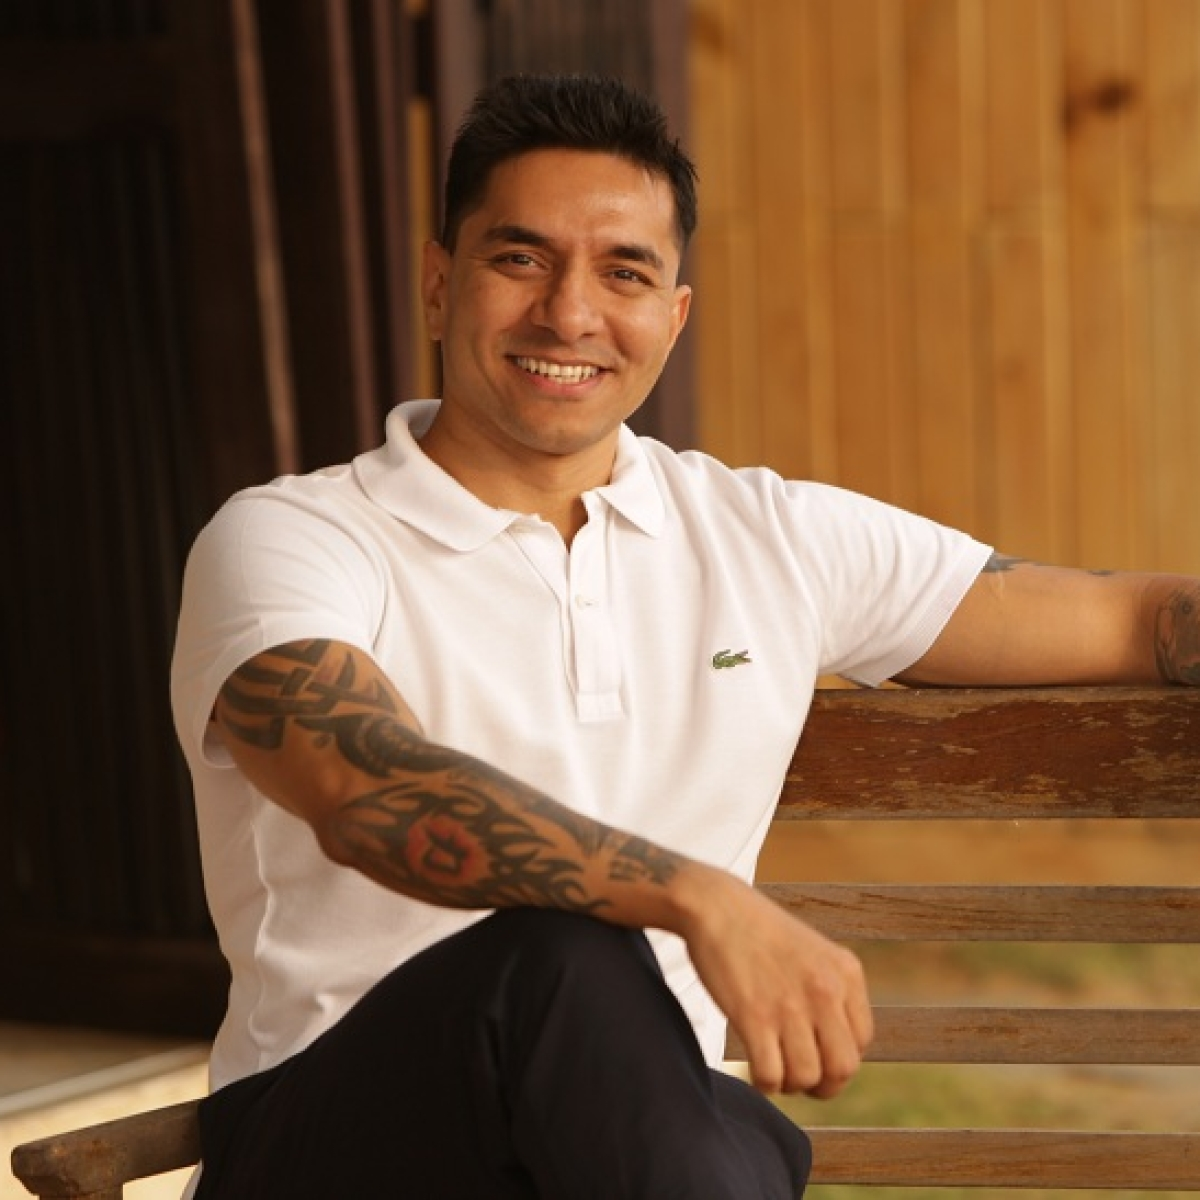 Immunity building: Celebrity Lifestyle Coach Luke Coutinho shows the way